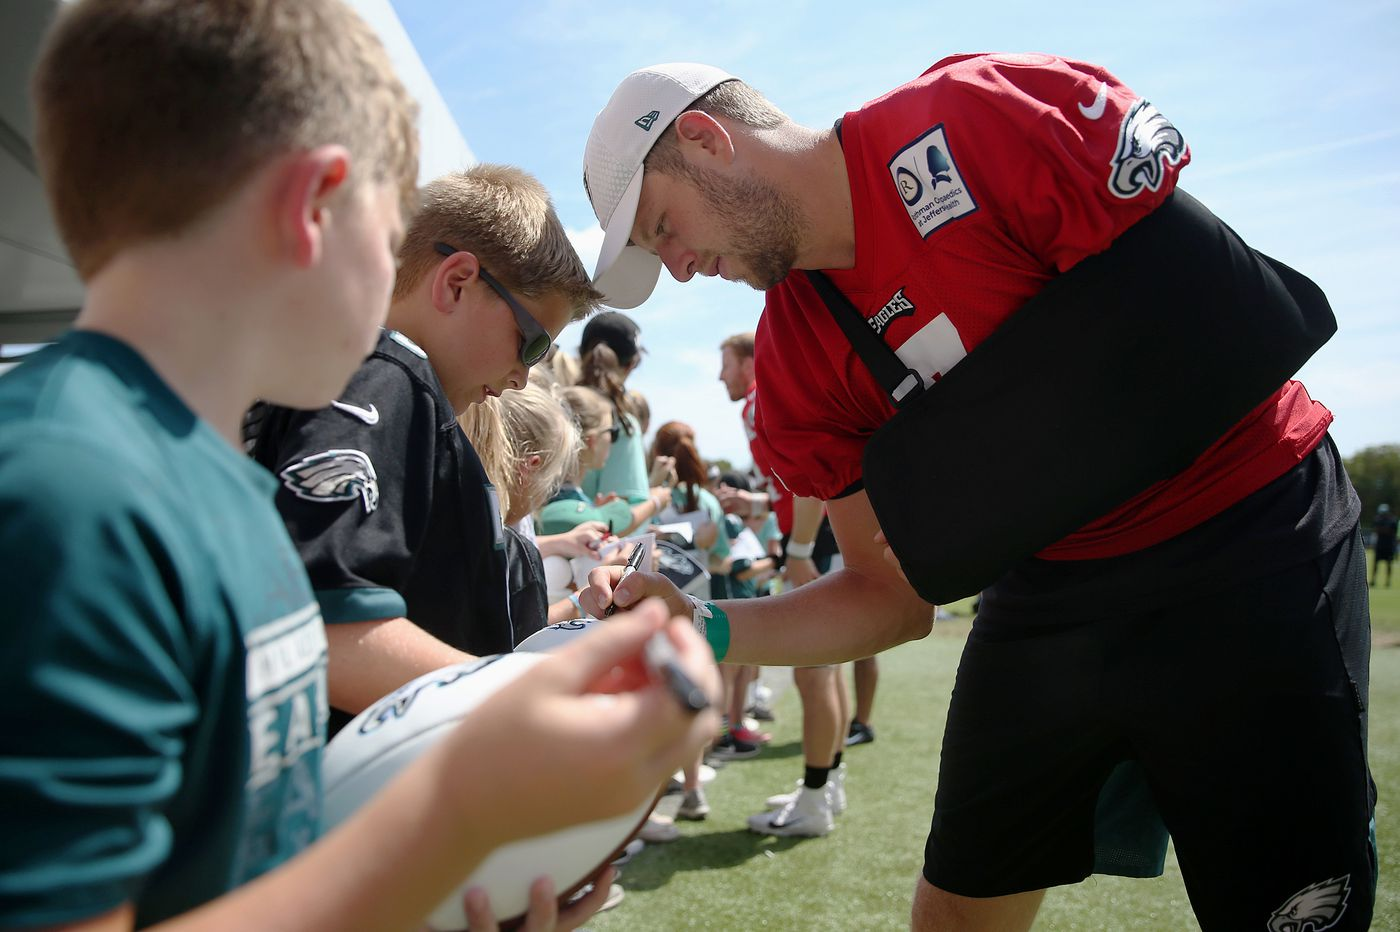 Eagles injury updates: Nate Sudfeld is thankful it wasn't his right wrist; Lane Johnson and Dallas Goedert will sit out preseason as well